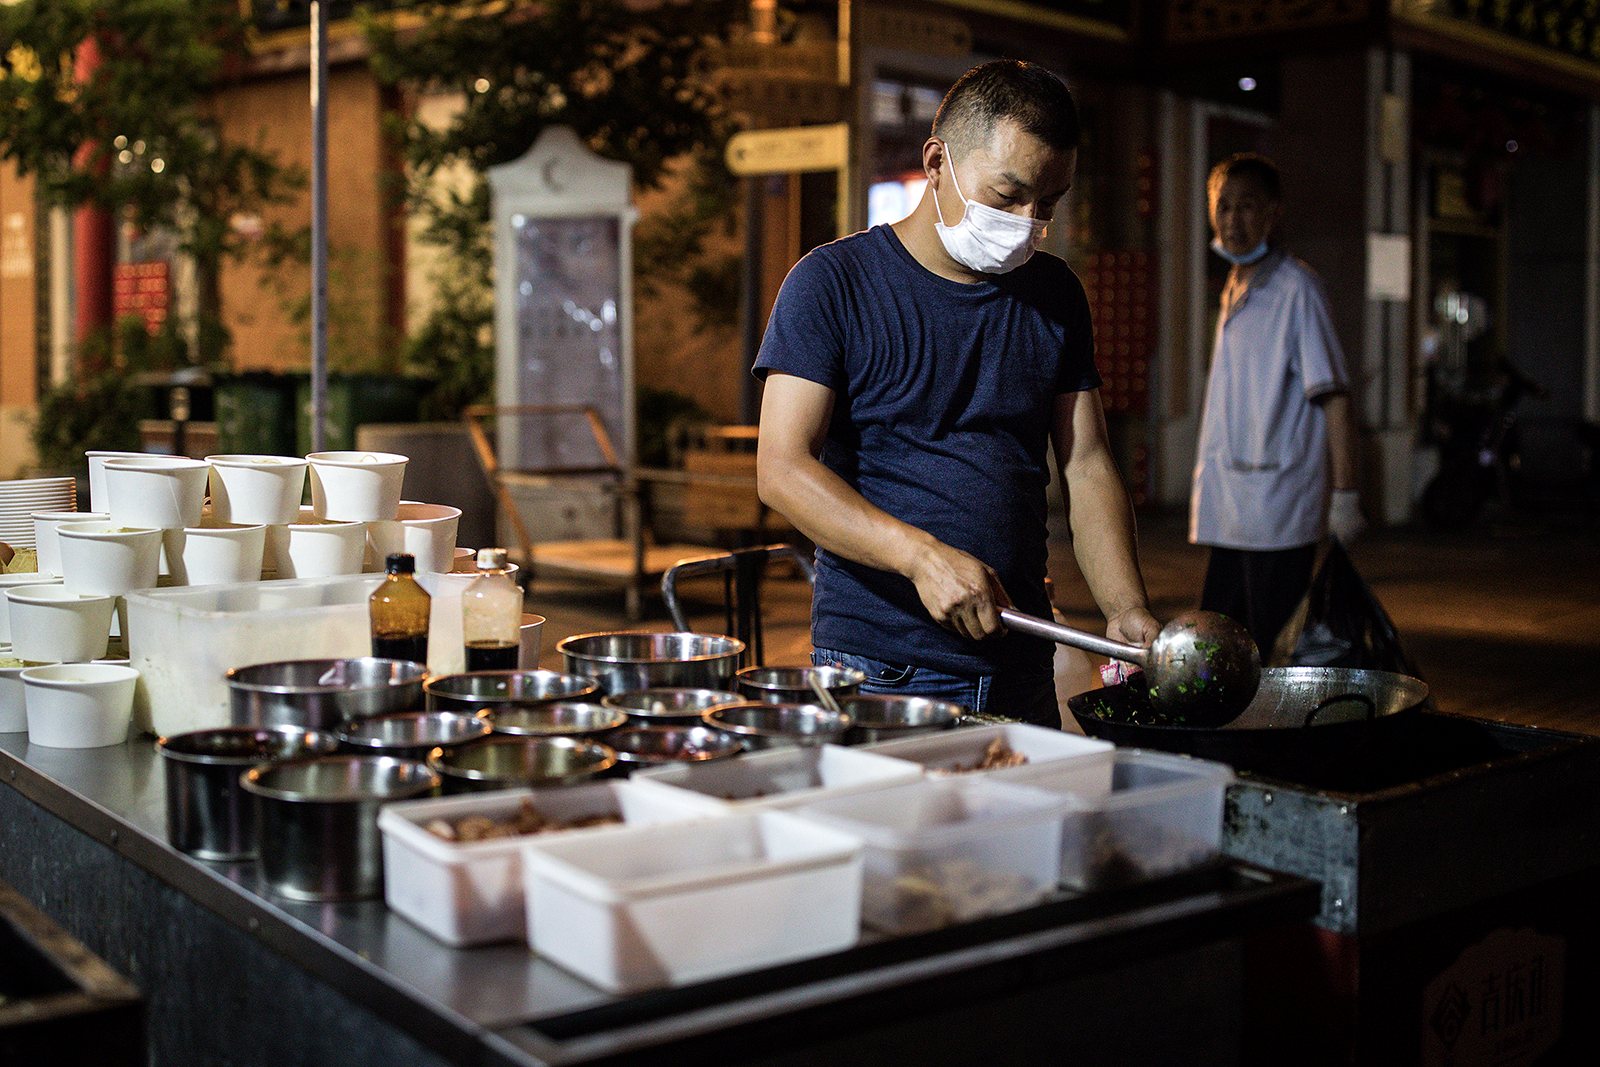 A man cooks outside of the restaurant on Jiqing street on June 5, in Wuhan, China.